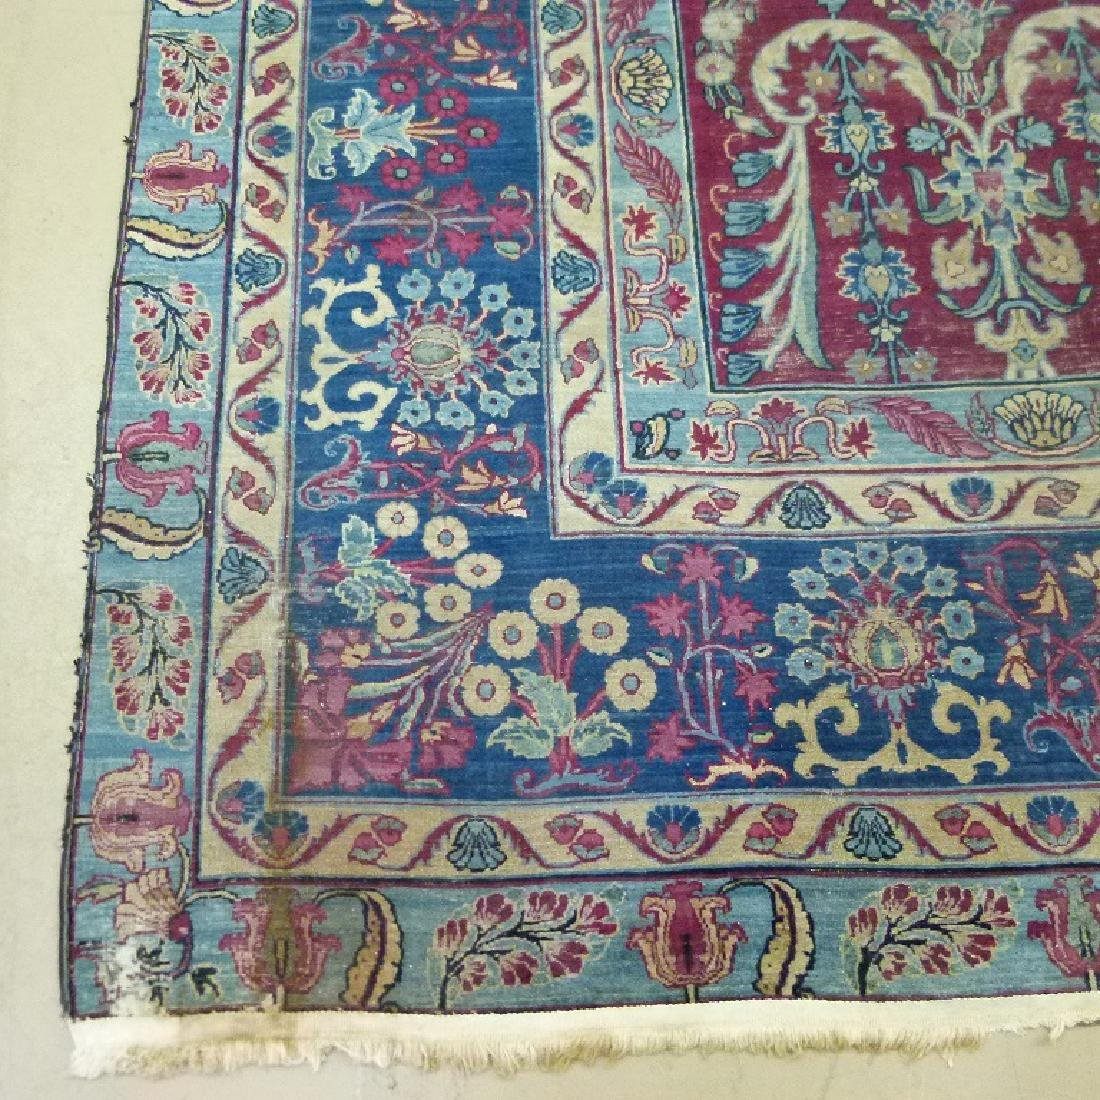 ANTIQUE SAROUK ORIENTAL CARPET (RE-SIZED) - 8